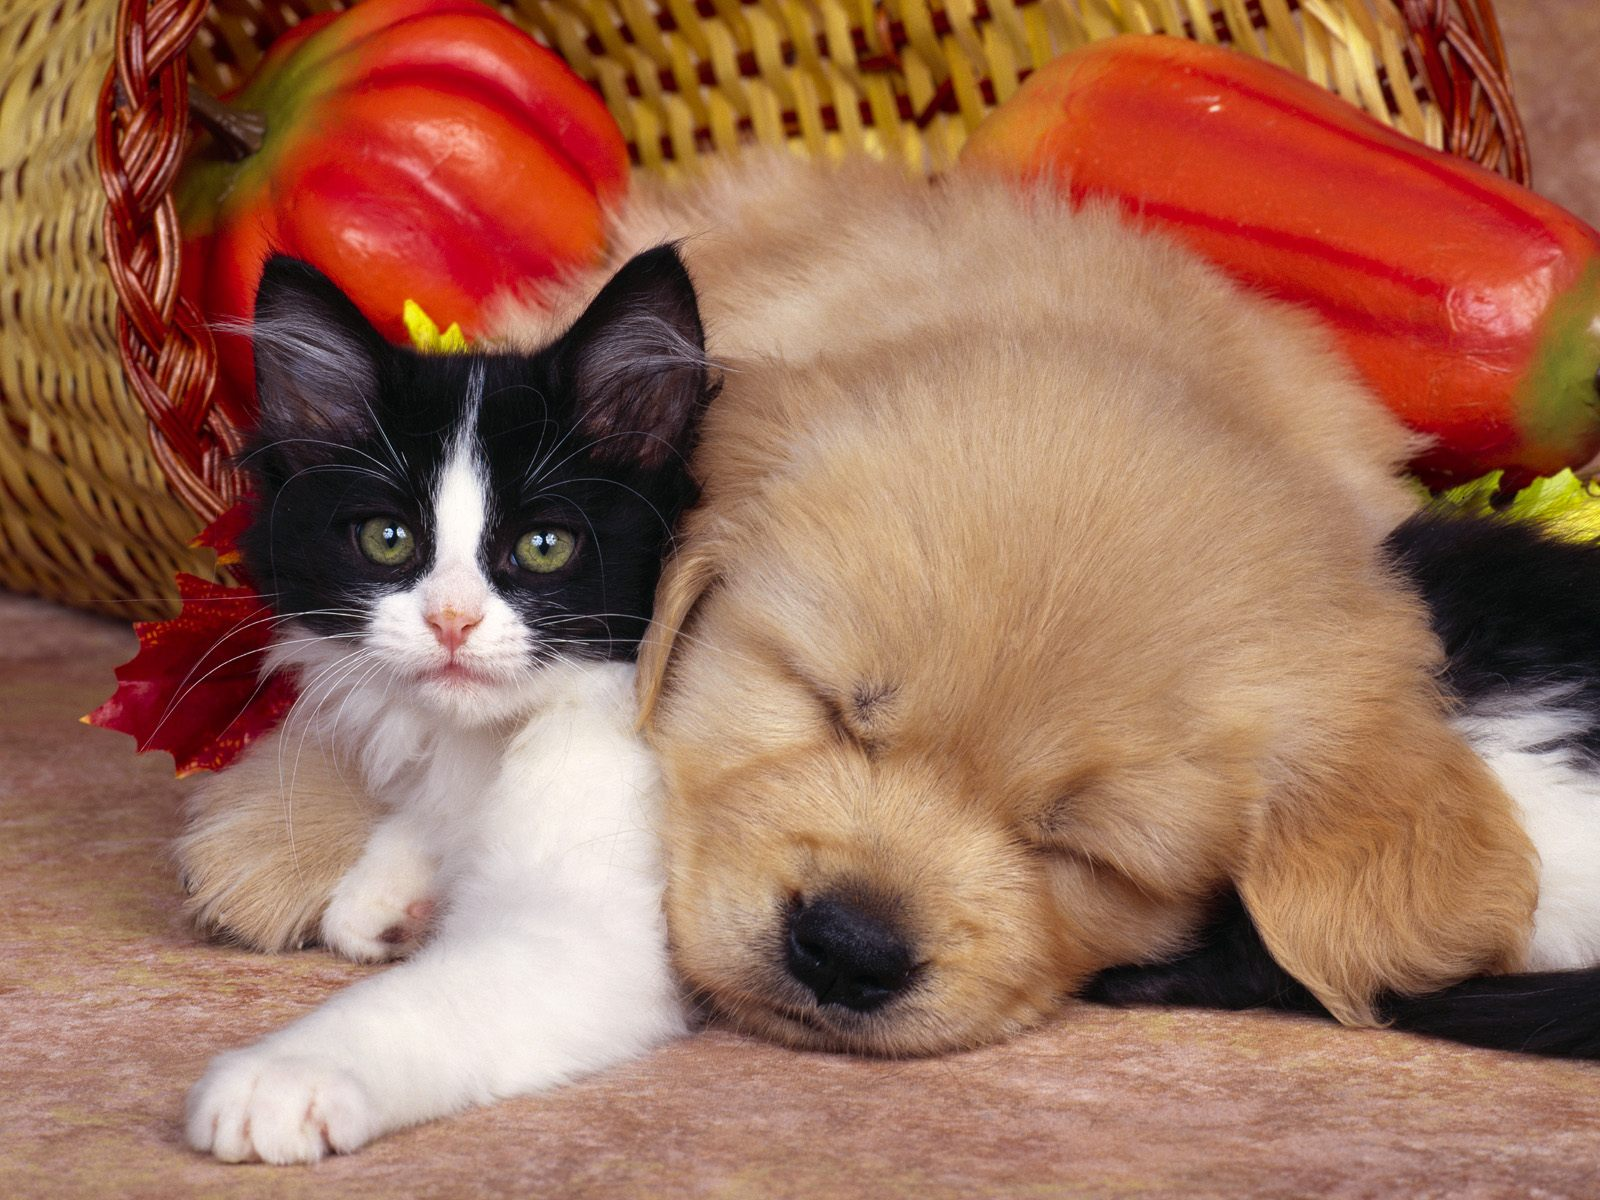 best wallpapers: dog wallpapers